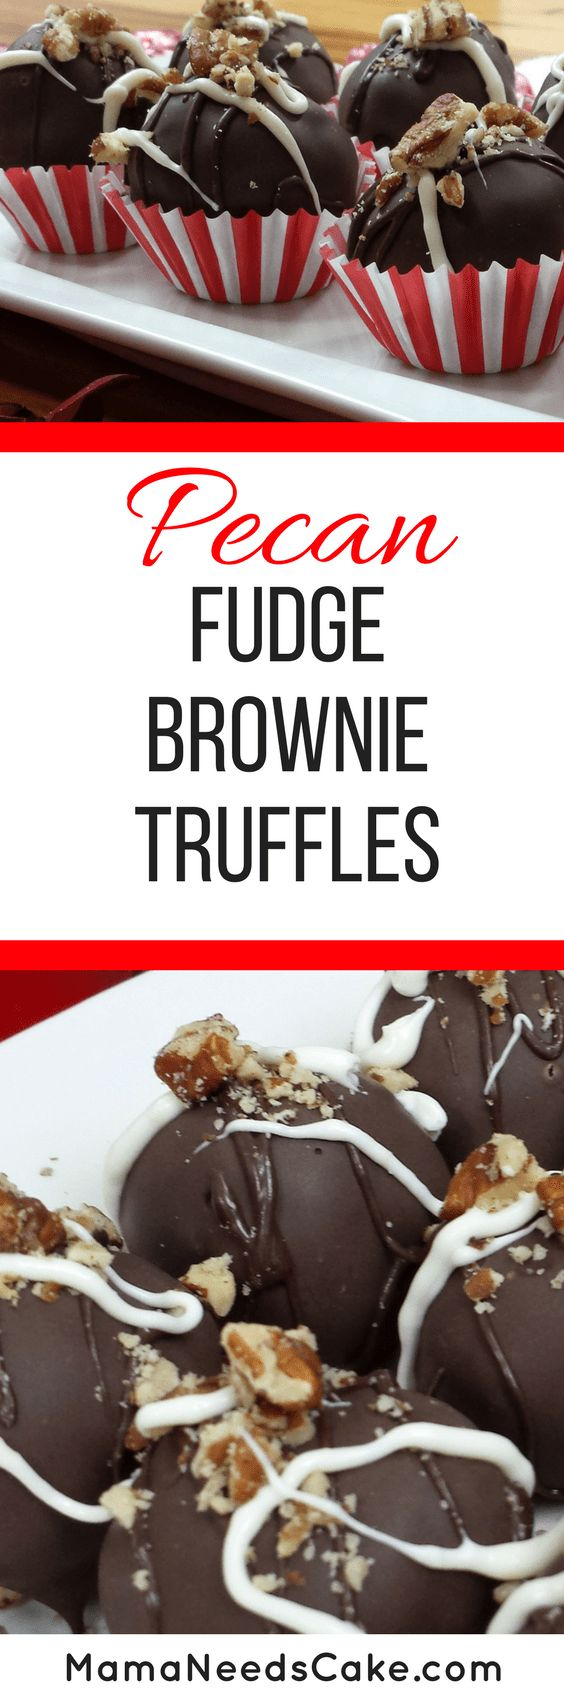 Pecan Fudge Brownie Truffles Recipe (Video Tutorial) -Everyone enjoys a delicious brownie but how about a brownie rolled into a ball with cream cheese and dipped in milk chocolate? Better yet... sprinkled with pecans!